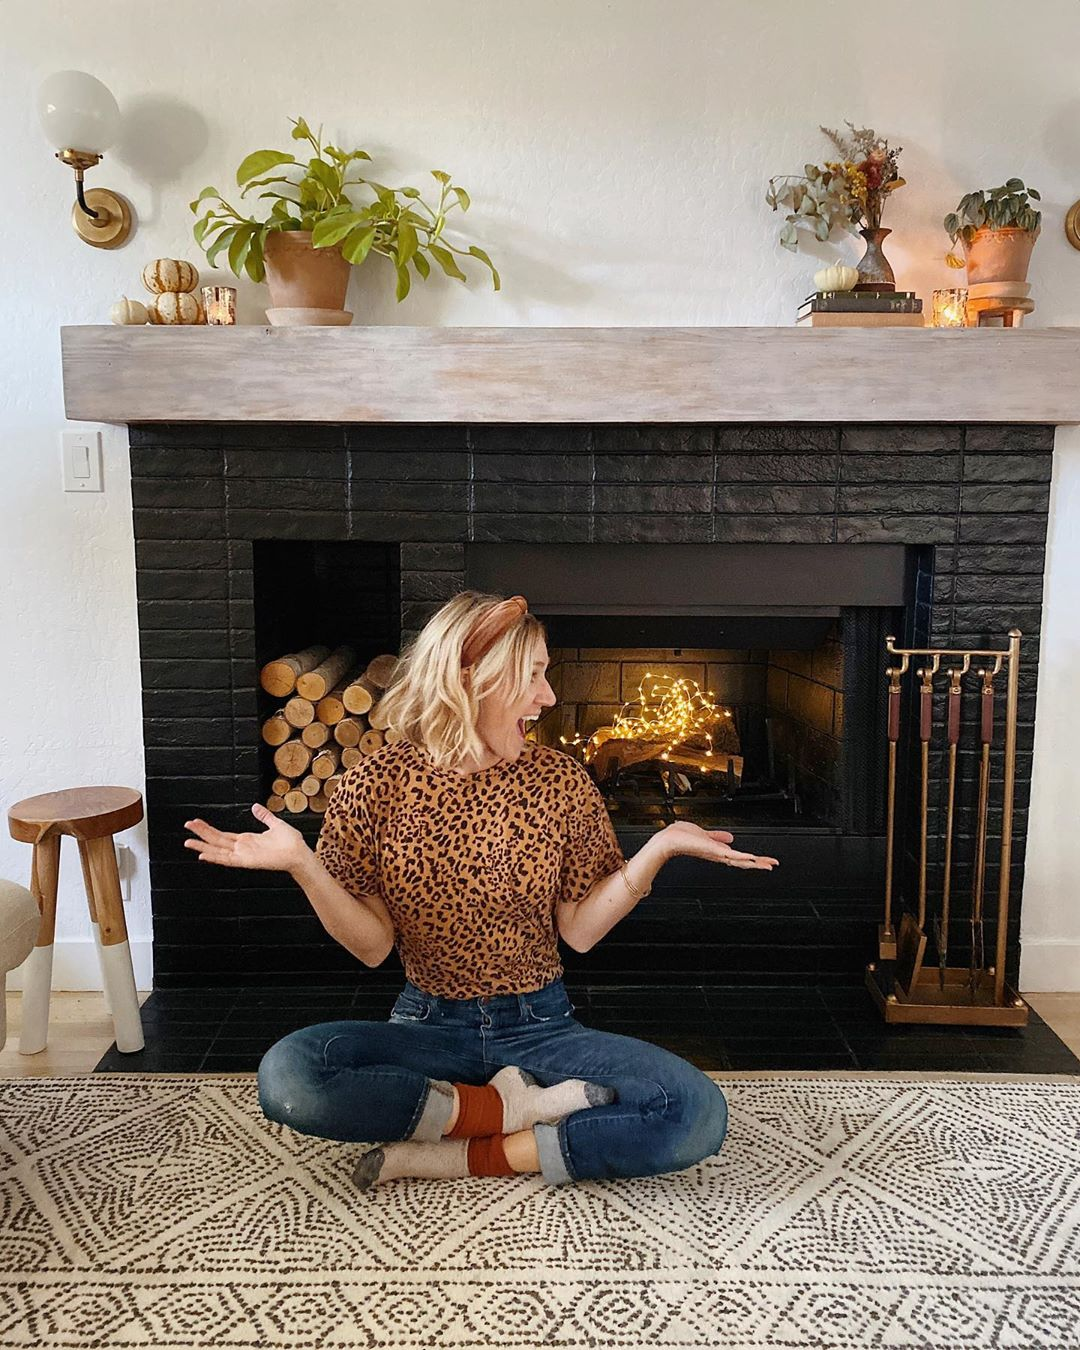 Those Who Can'T Light Fire, Use Twinkle Fireplacemakeover - Diy Home Decor